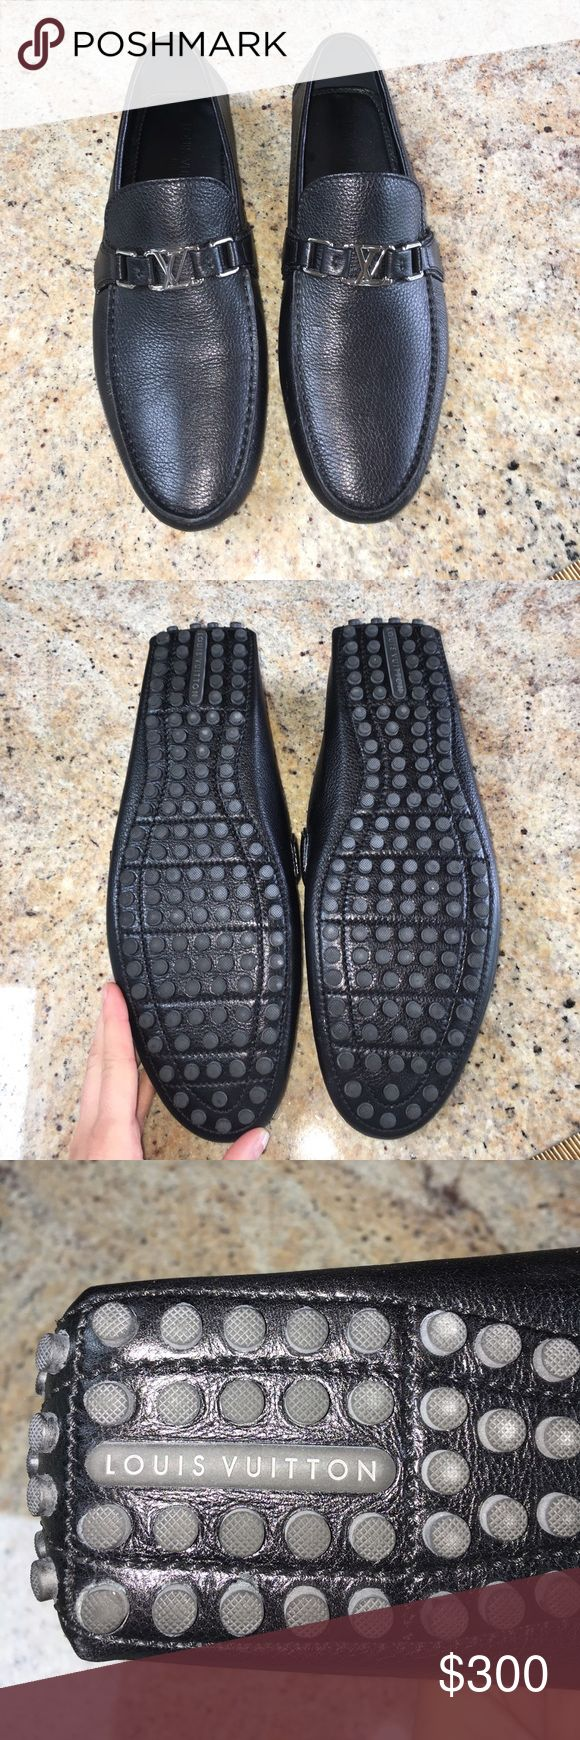 Men's Louis Vuitton black driving loafers Perfect condition, men's Louis Vuitton driving loafers. Silver buckle on front. Size 9.5 which I believe is equivalent to a men's 11/11.5. Only worn a couple times. Don't have box but authentic and perfect condition Louis Vuitton Shoes Loafers & Slip-Ons